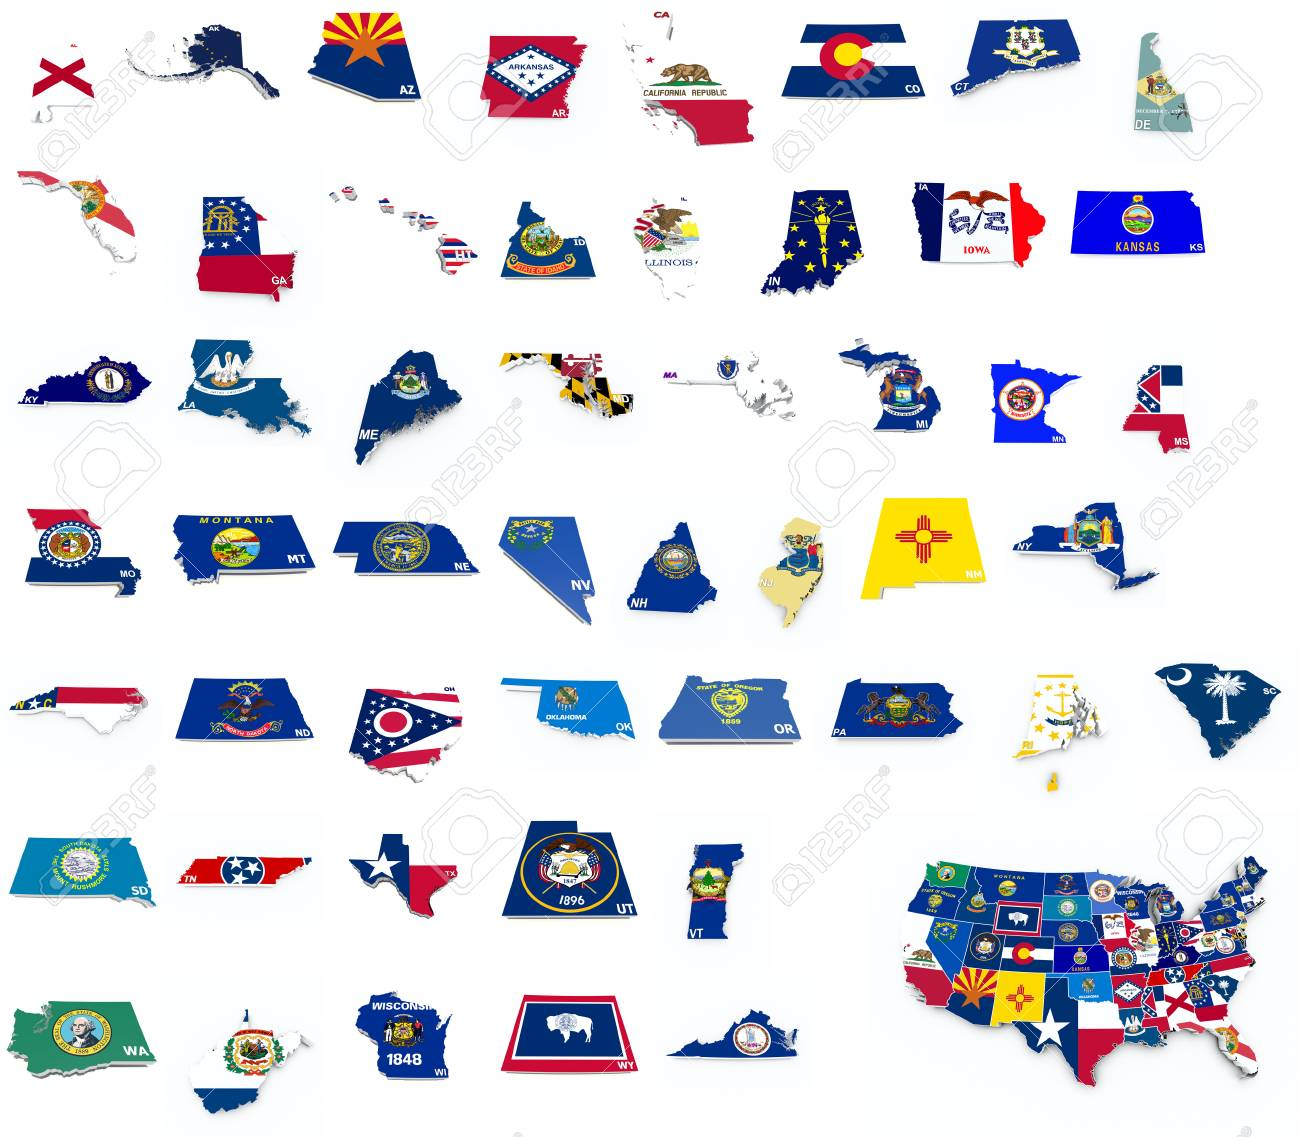 Usa State Flags On 3d Maps Stock Photo Picture And Royalty Free - Us-map-with-state-flags